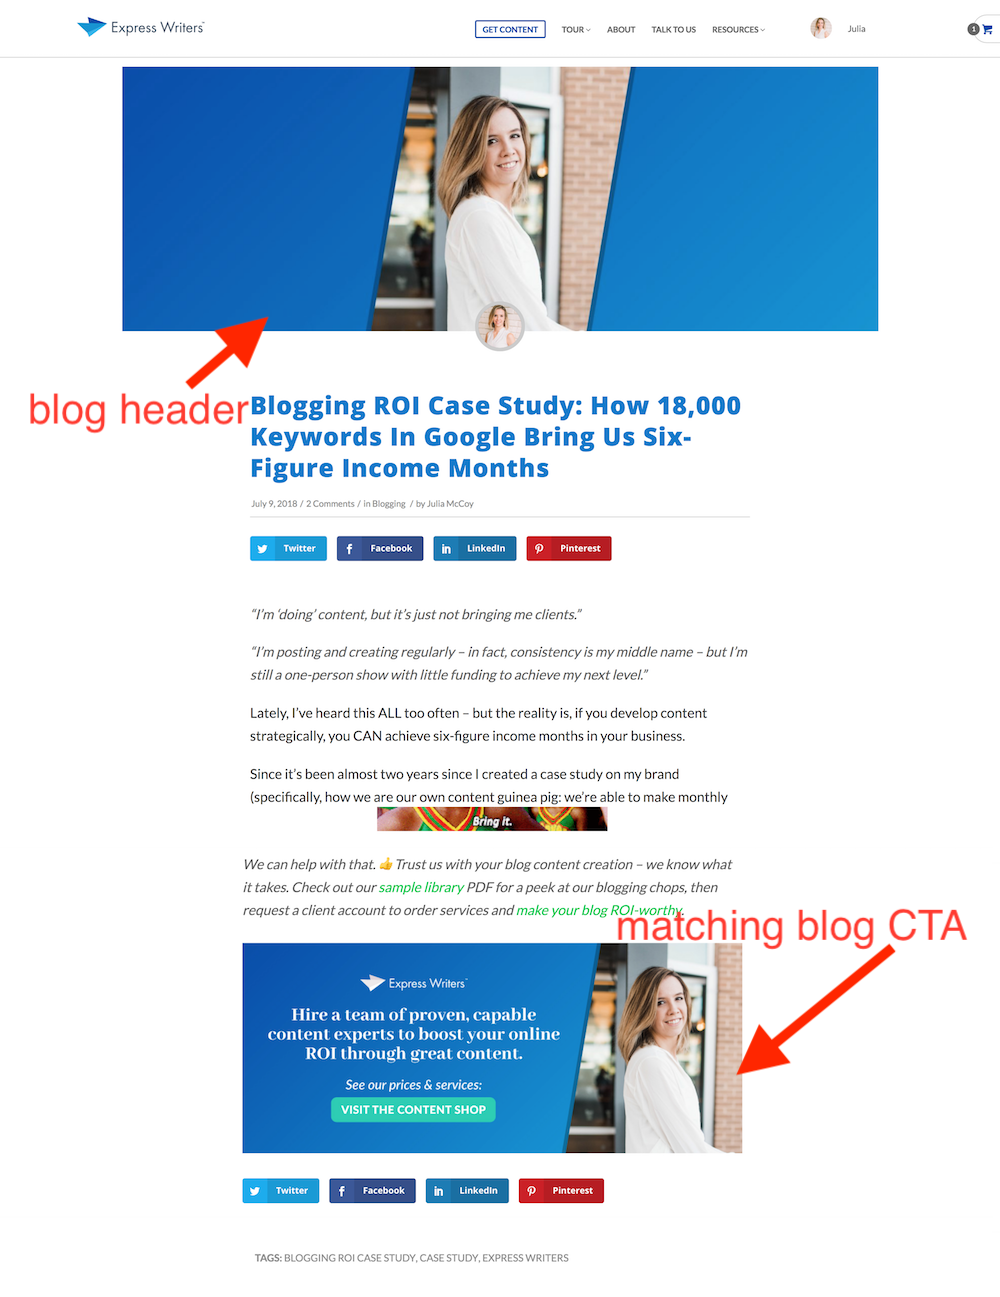 express writers blog and cta